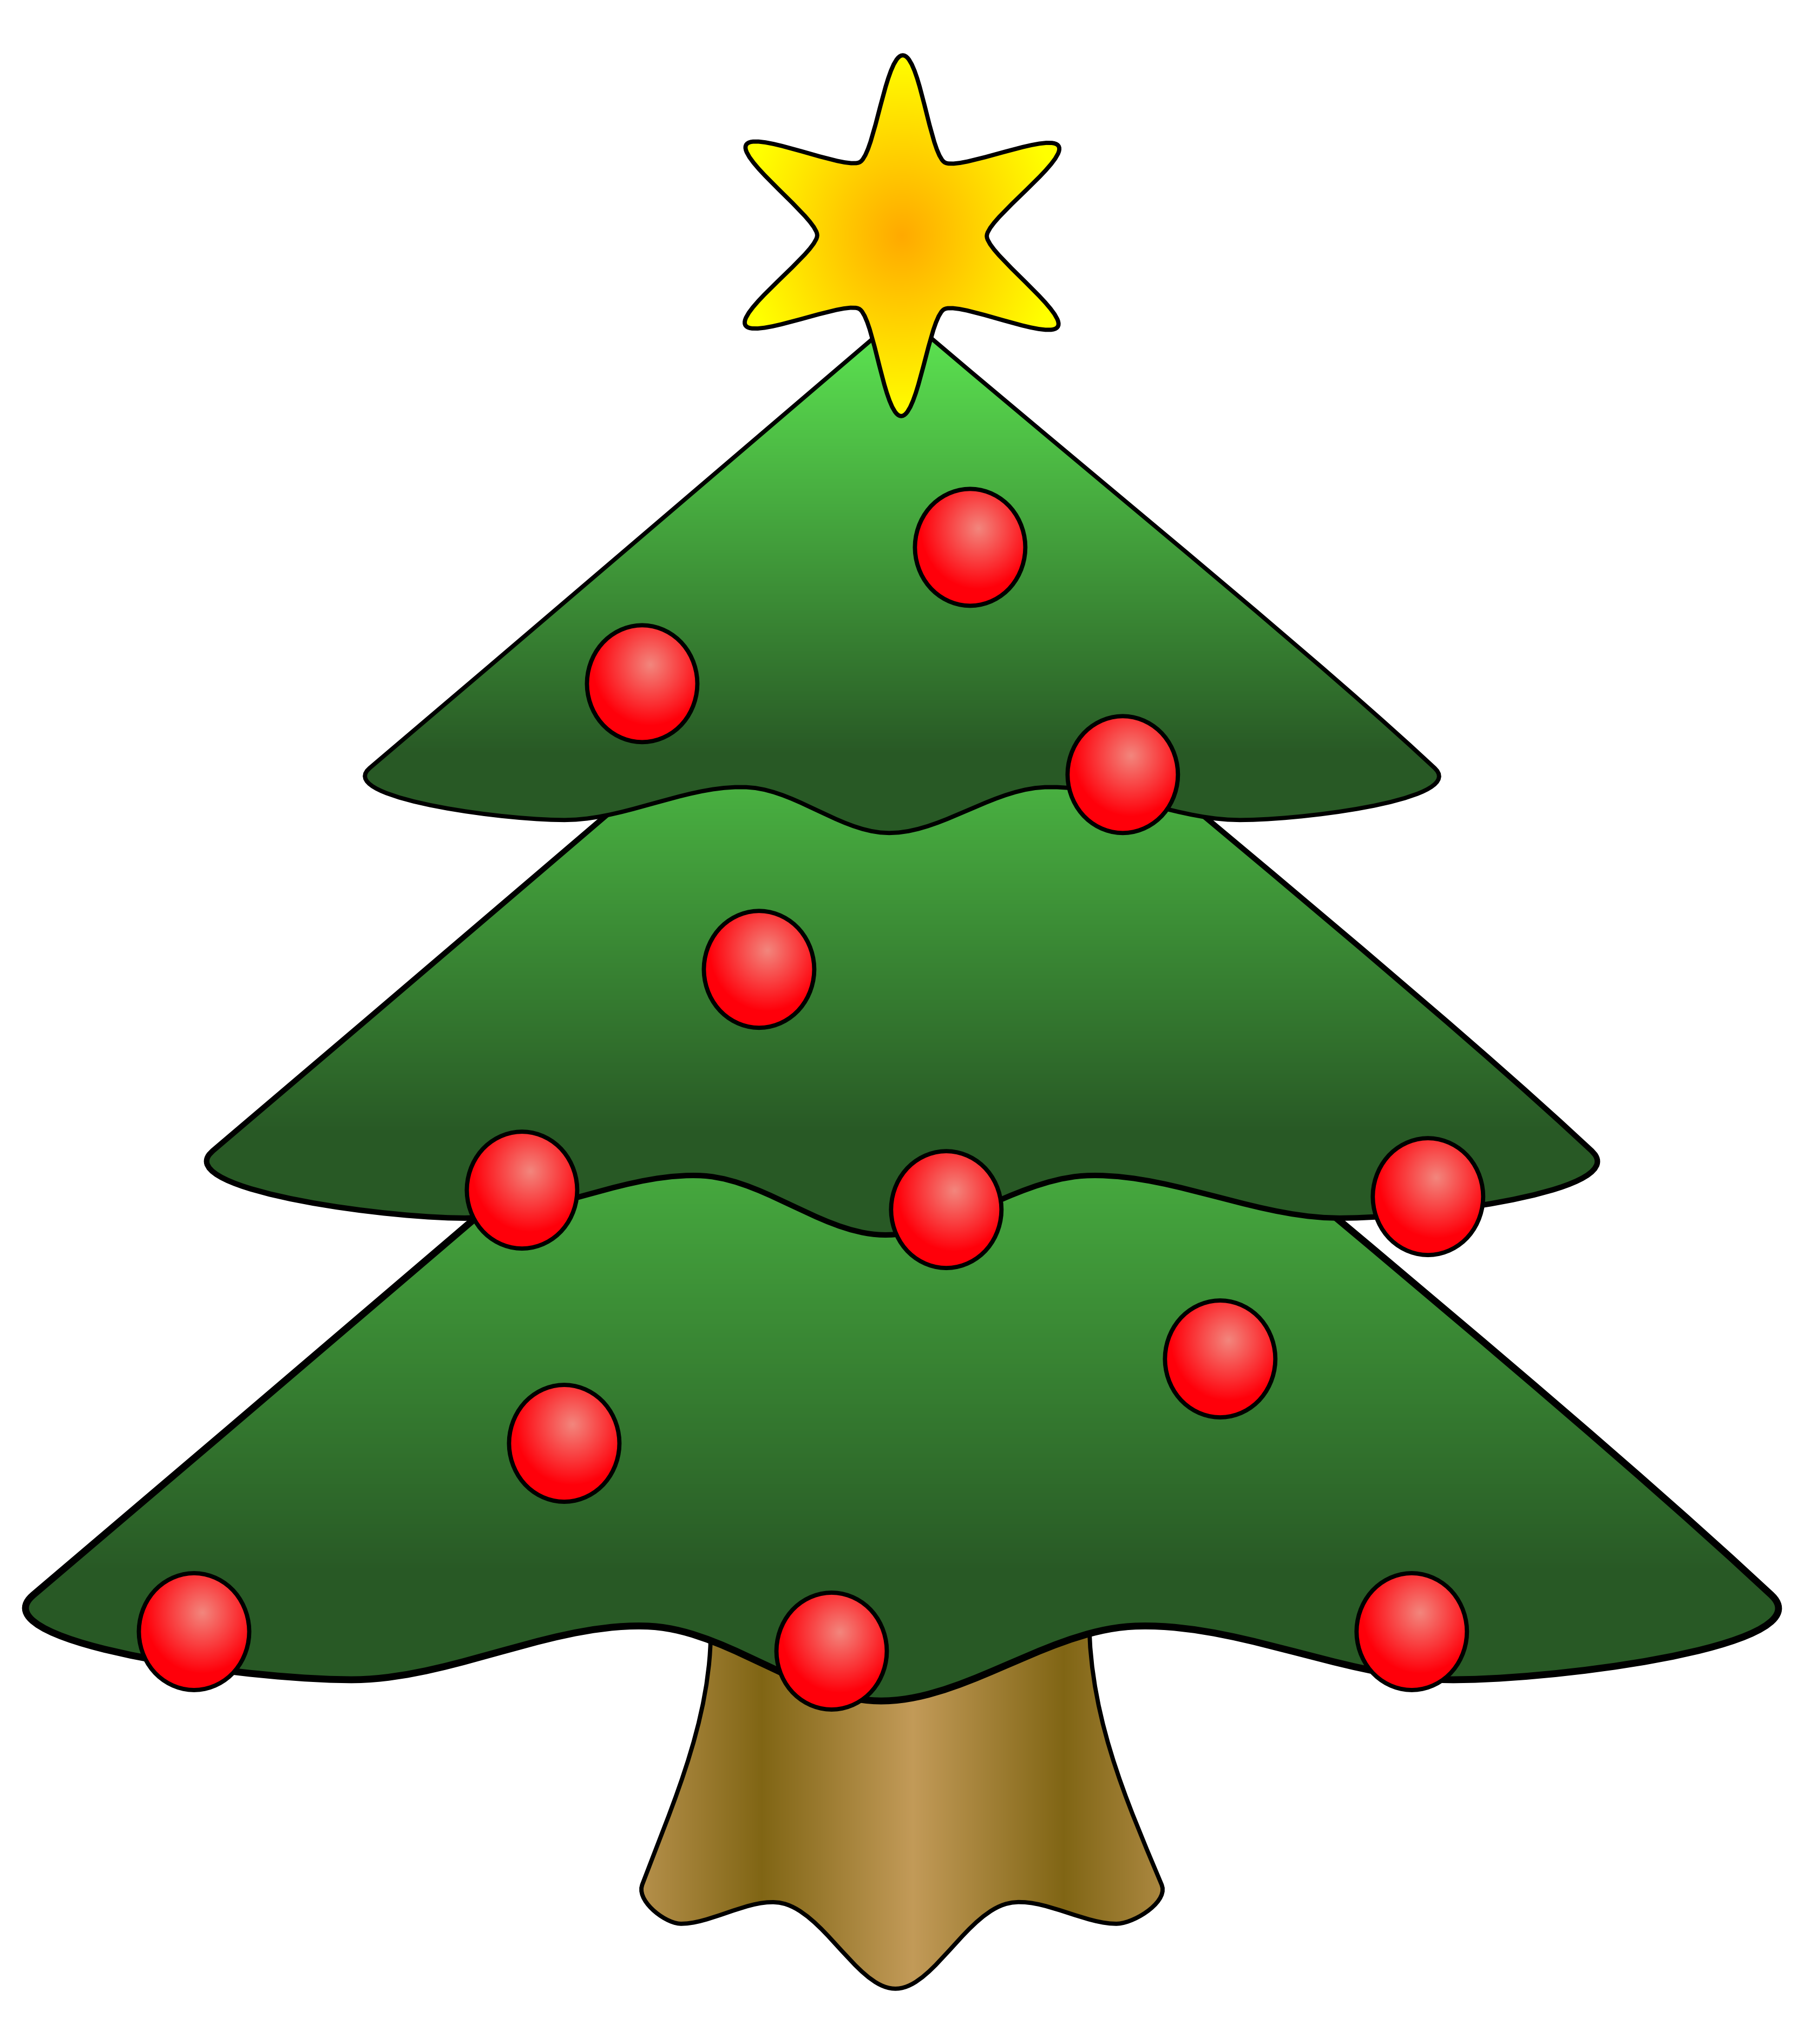 Christmas Tree clipart #6, Download drawings